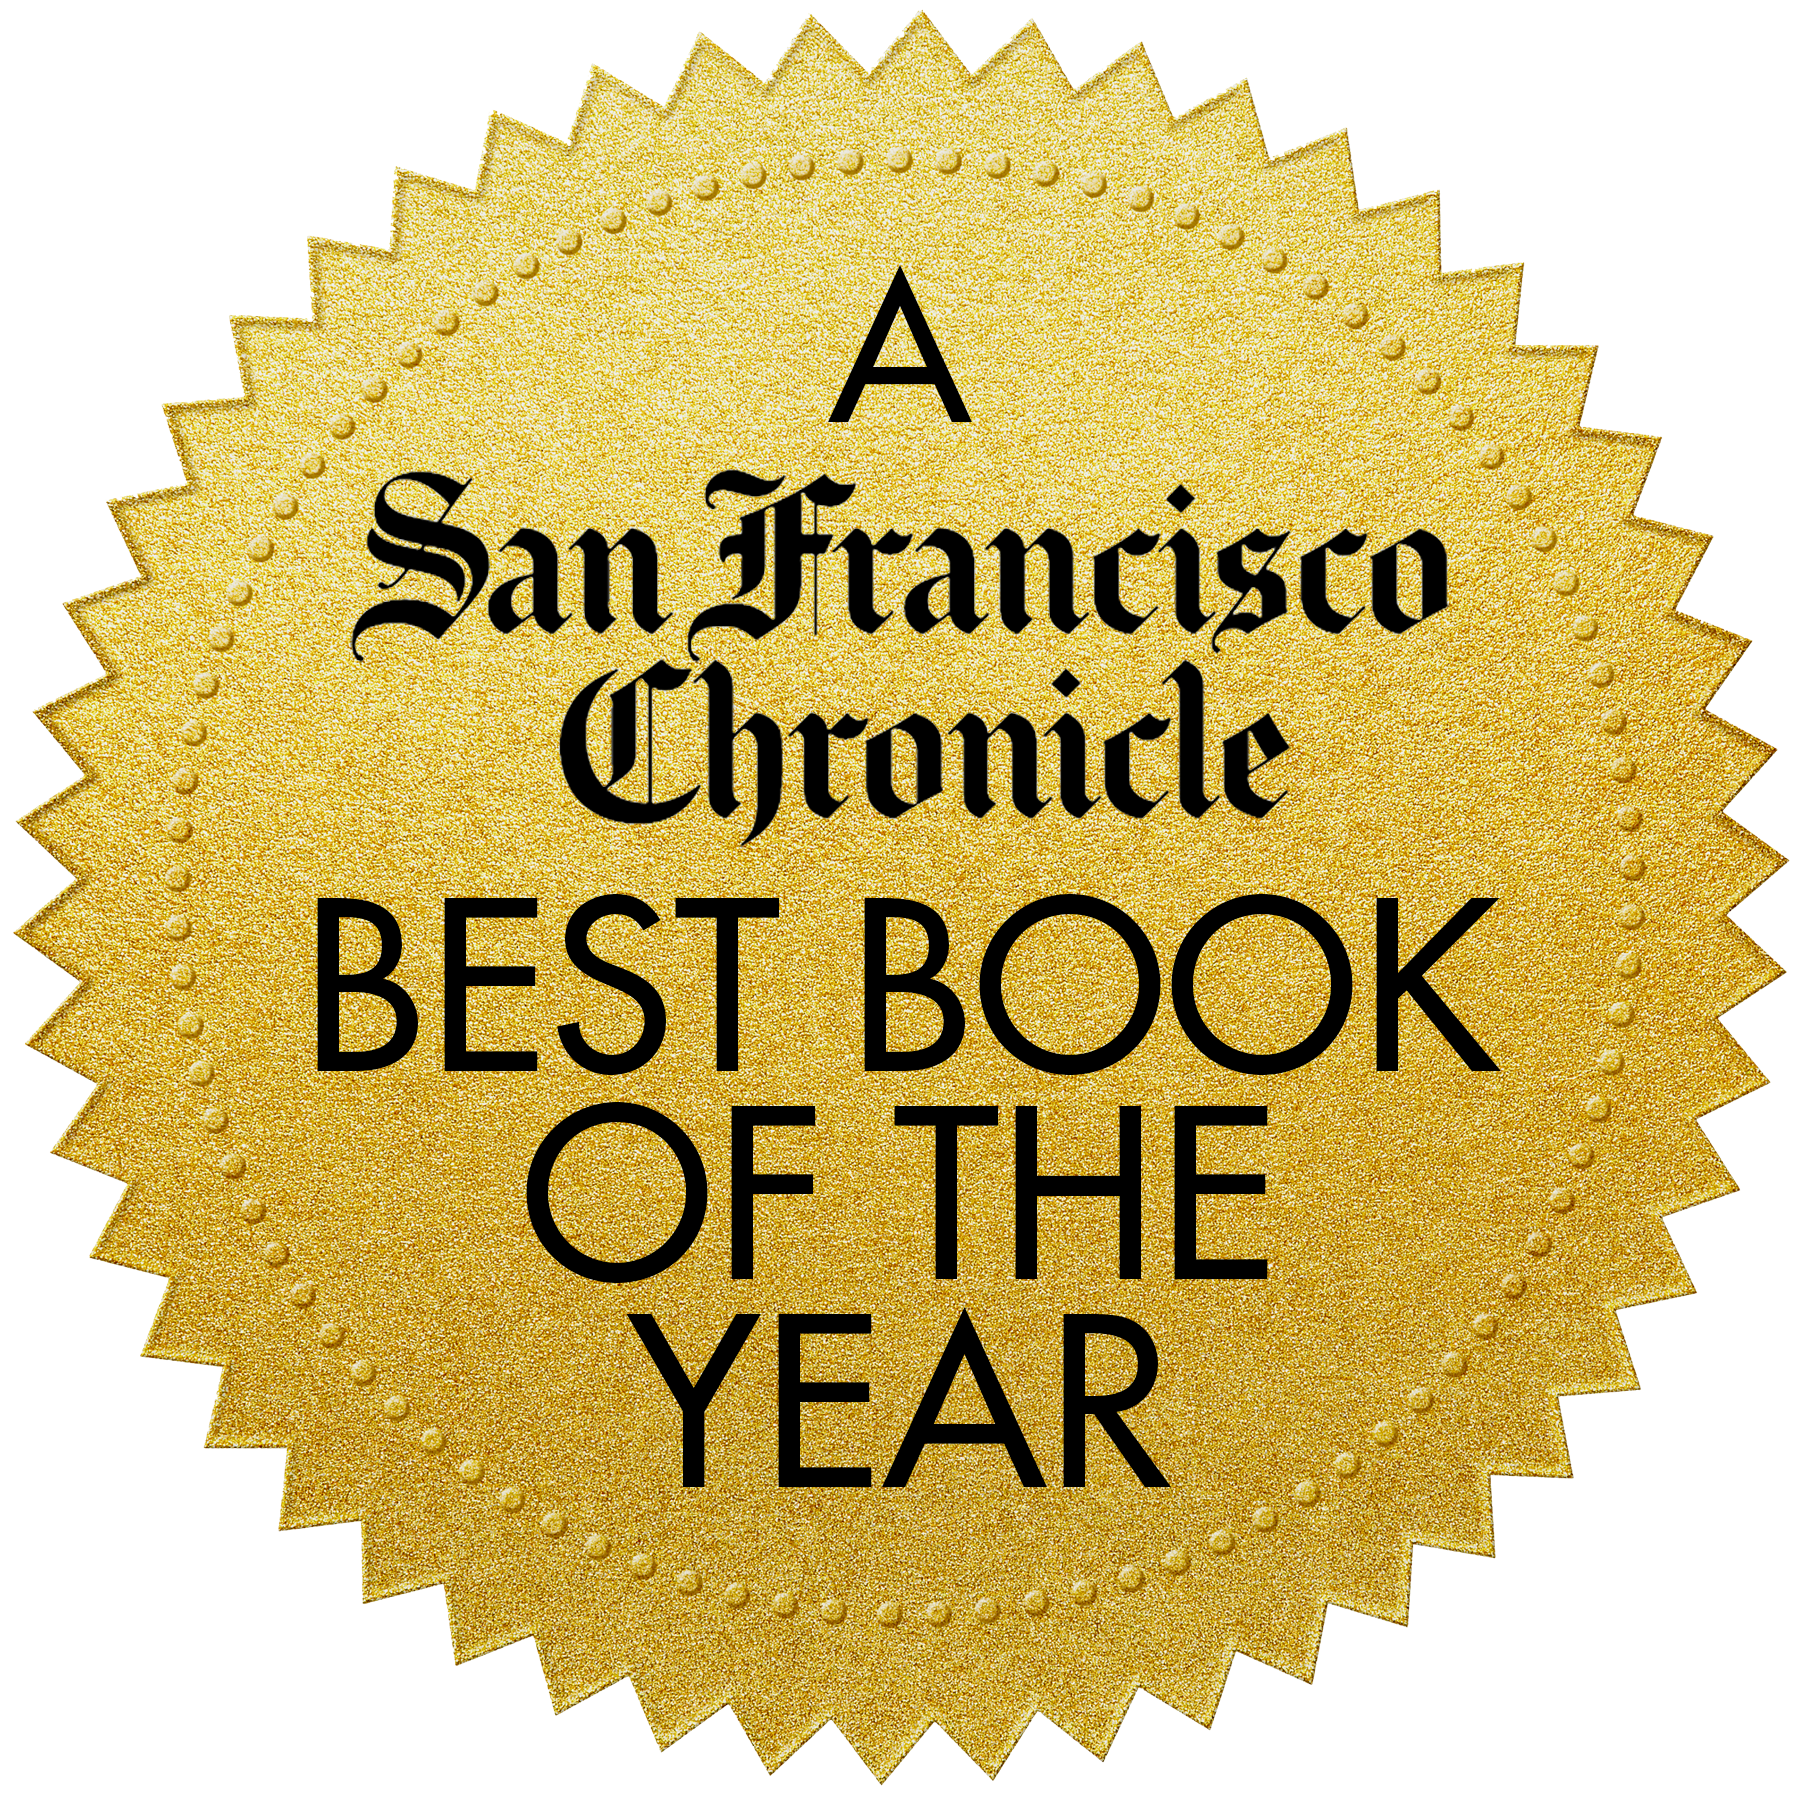 SFChronicle_Best-of-the-Year_GoldSeal1b_sm